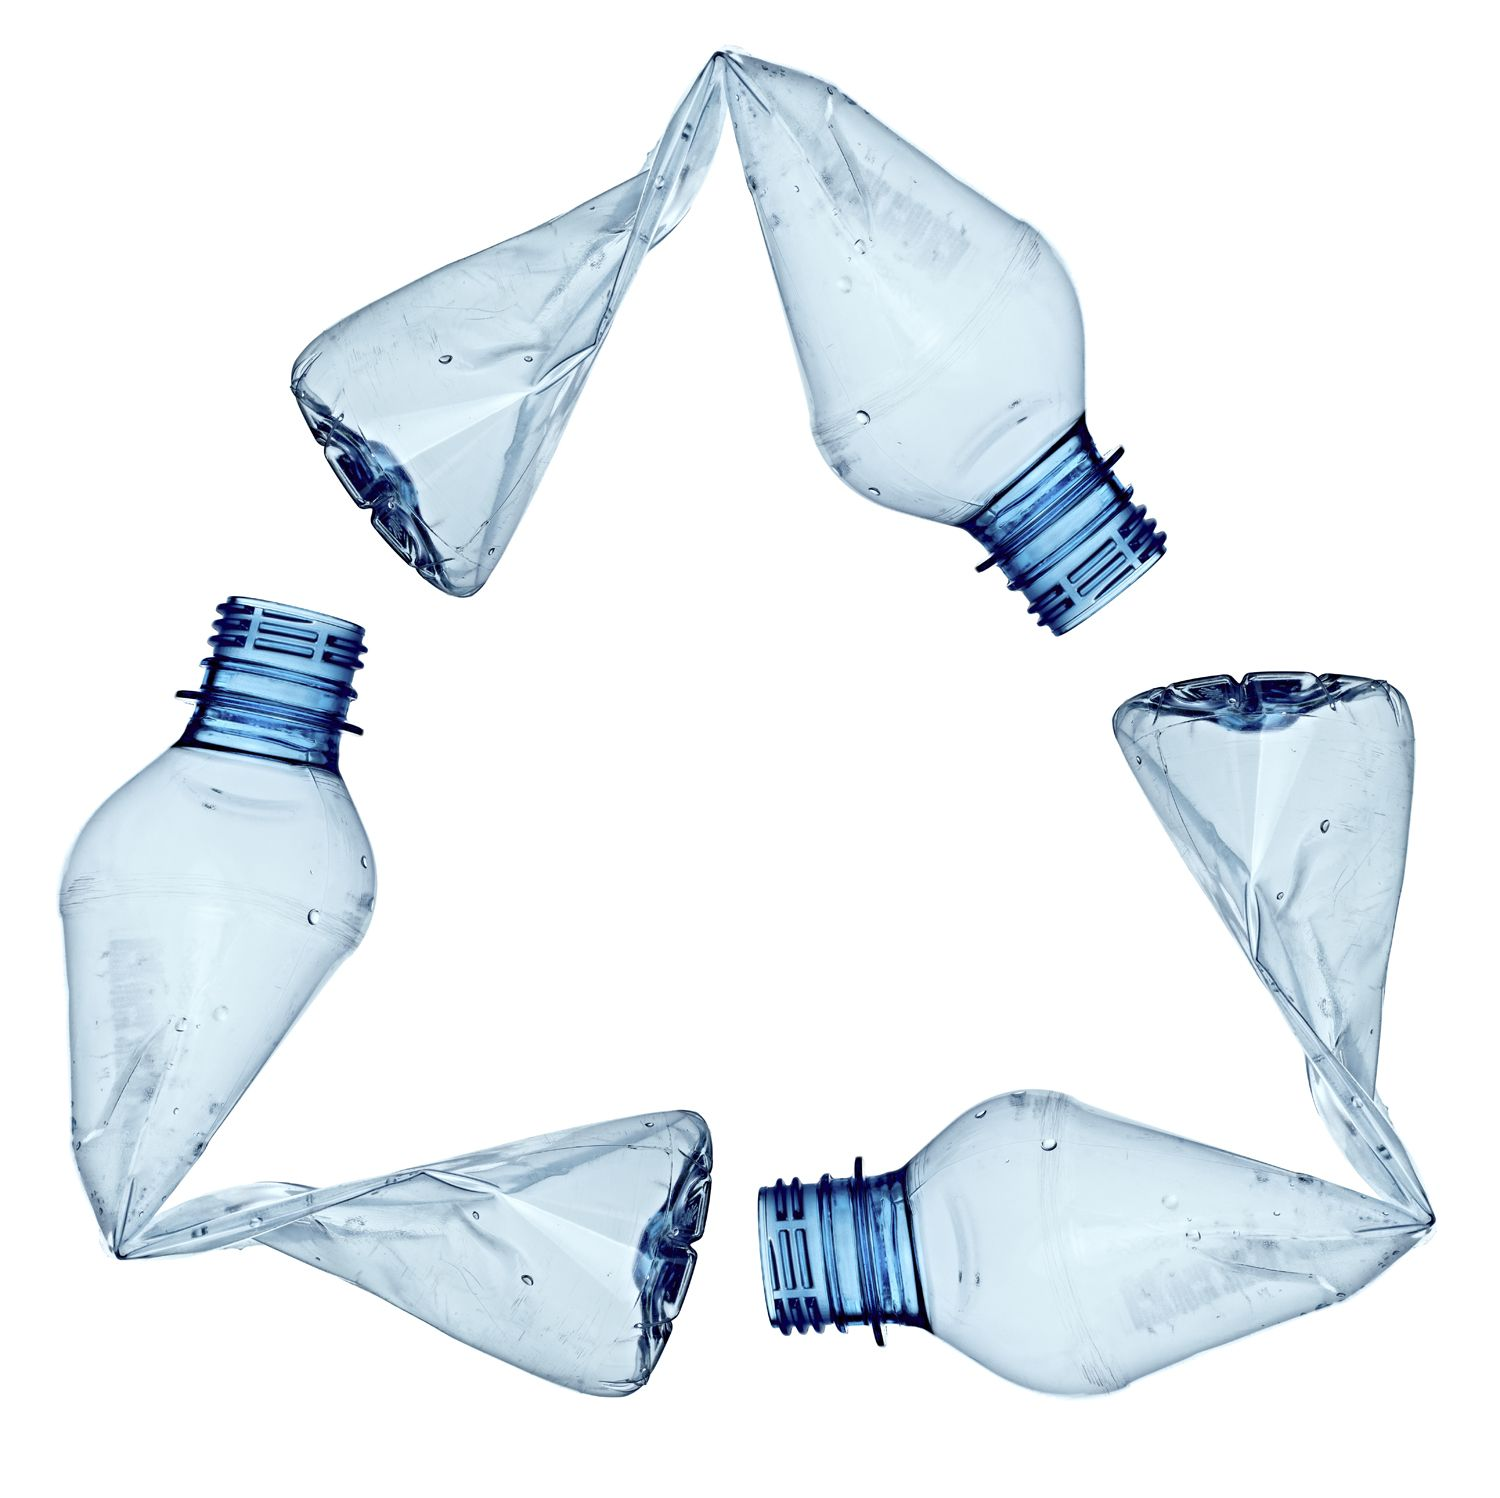 Recycle symbol reduce plastic bottles islam pinterest recycle symbol reduce plastic bottles biocorpaavc Choice Image